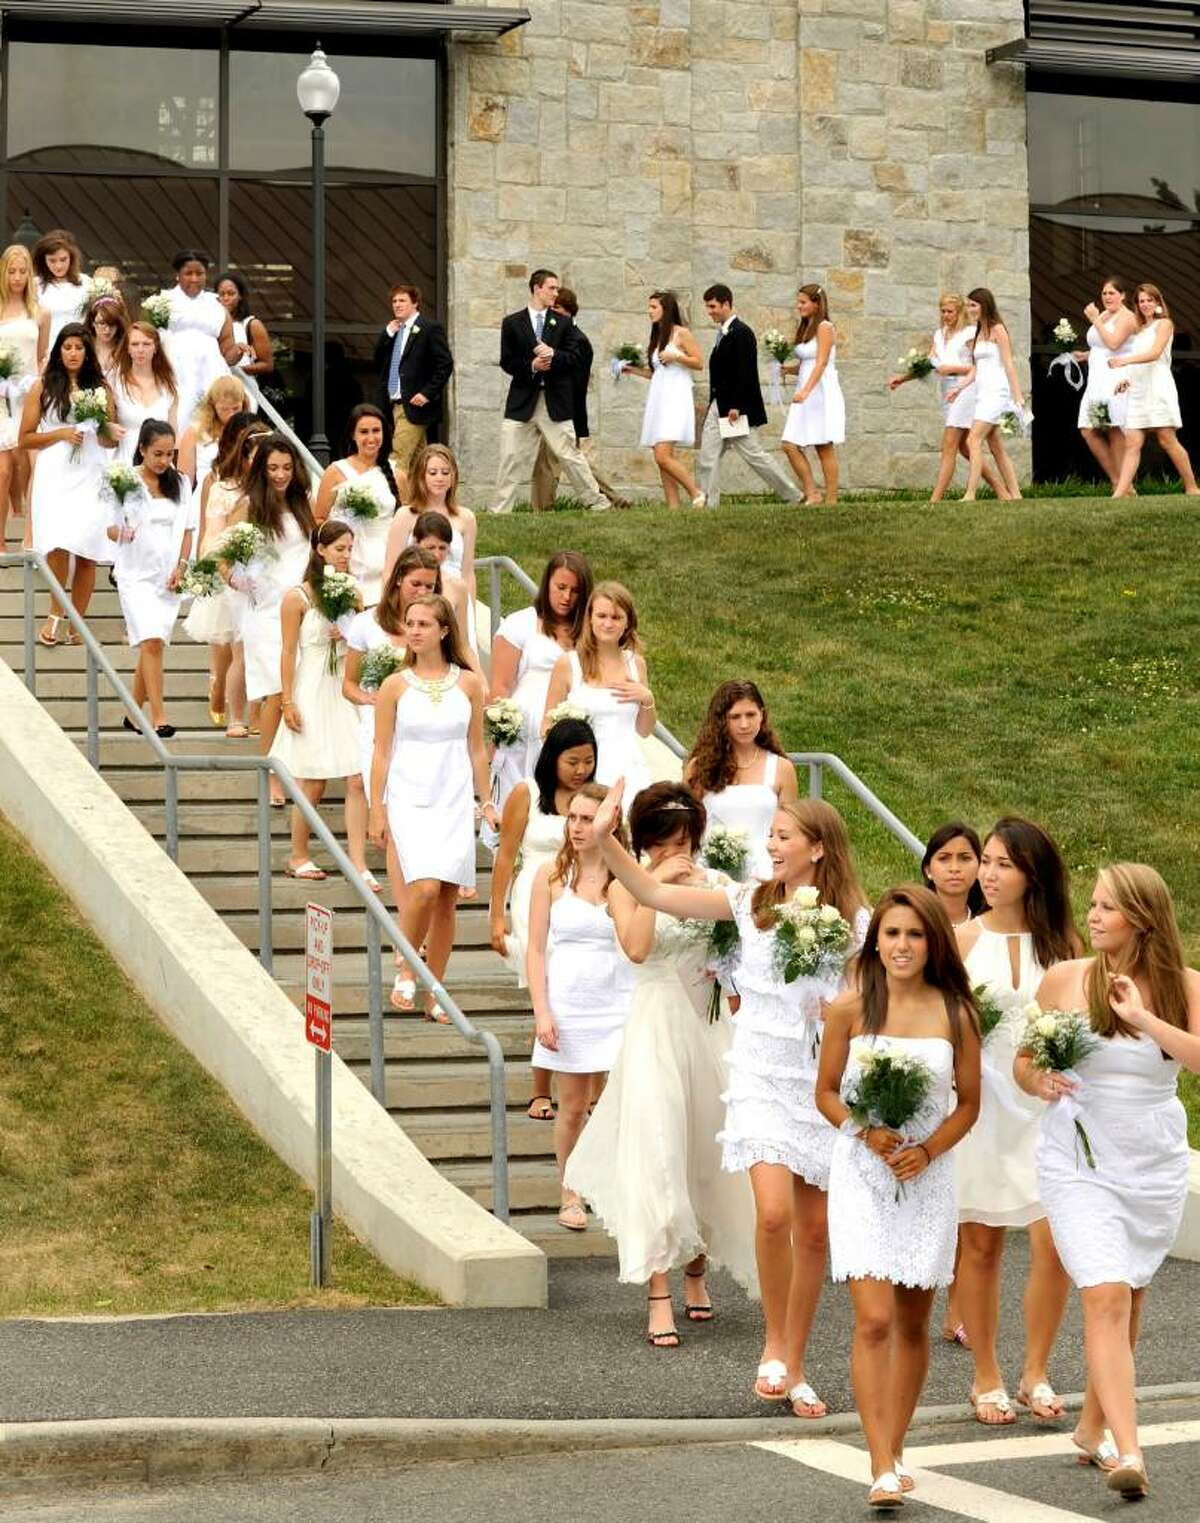 Graduating students walk from the chapel to the fieldhouse during graduation exercises at Canterbury School in New Milford on Tuesday, June 1, 2010.